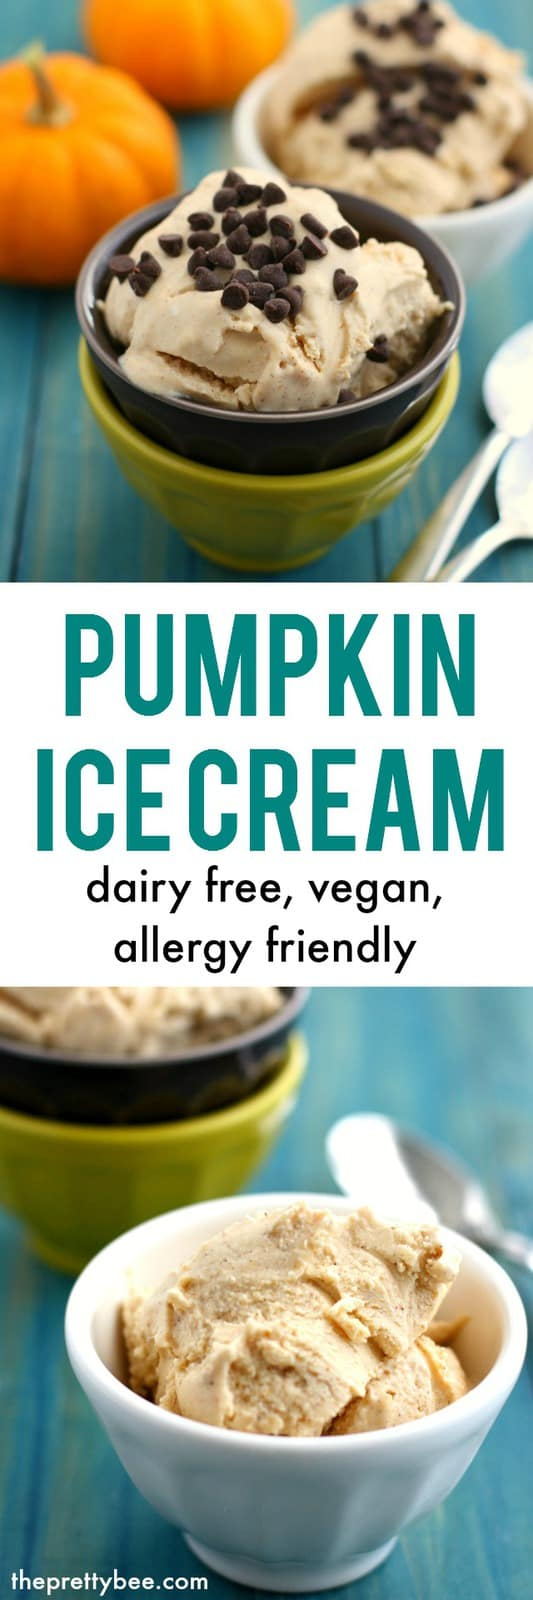 Creamy, delicious, flavorful pumpkin ice cream is dairy free and vegan. A delicious allergy friendly treat. #snackfreely #ad